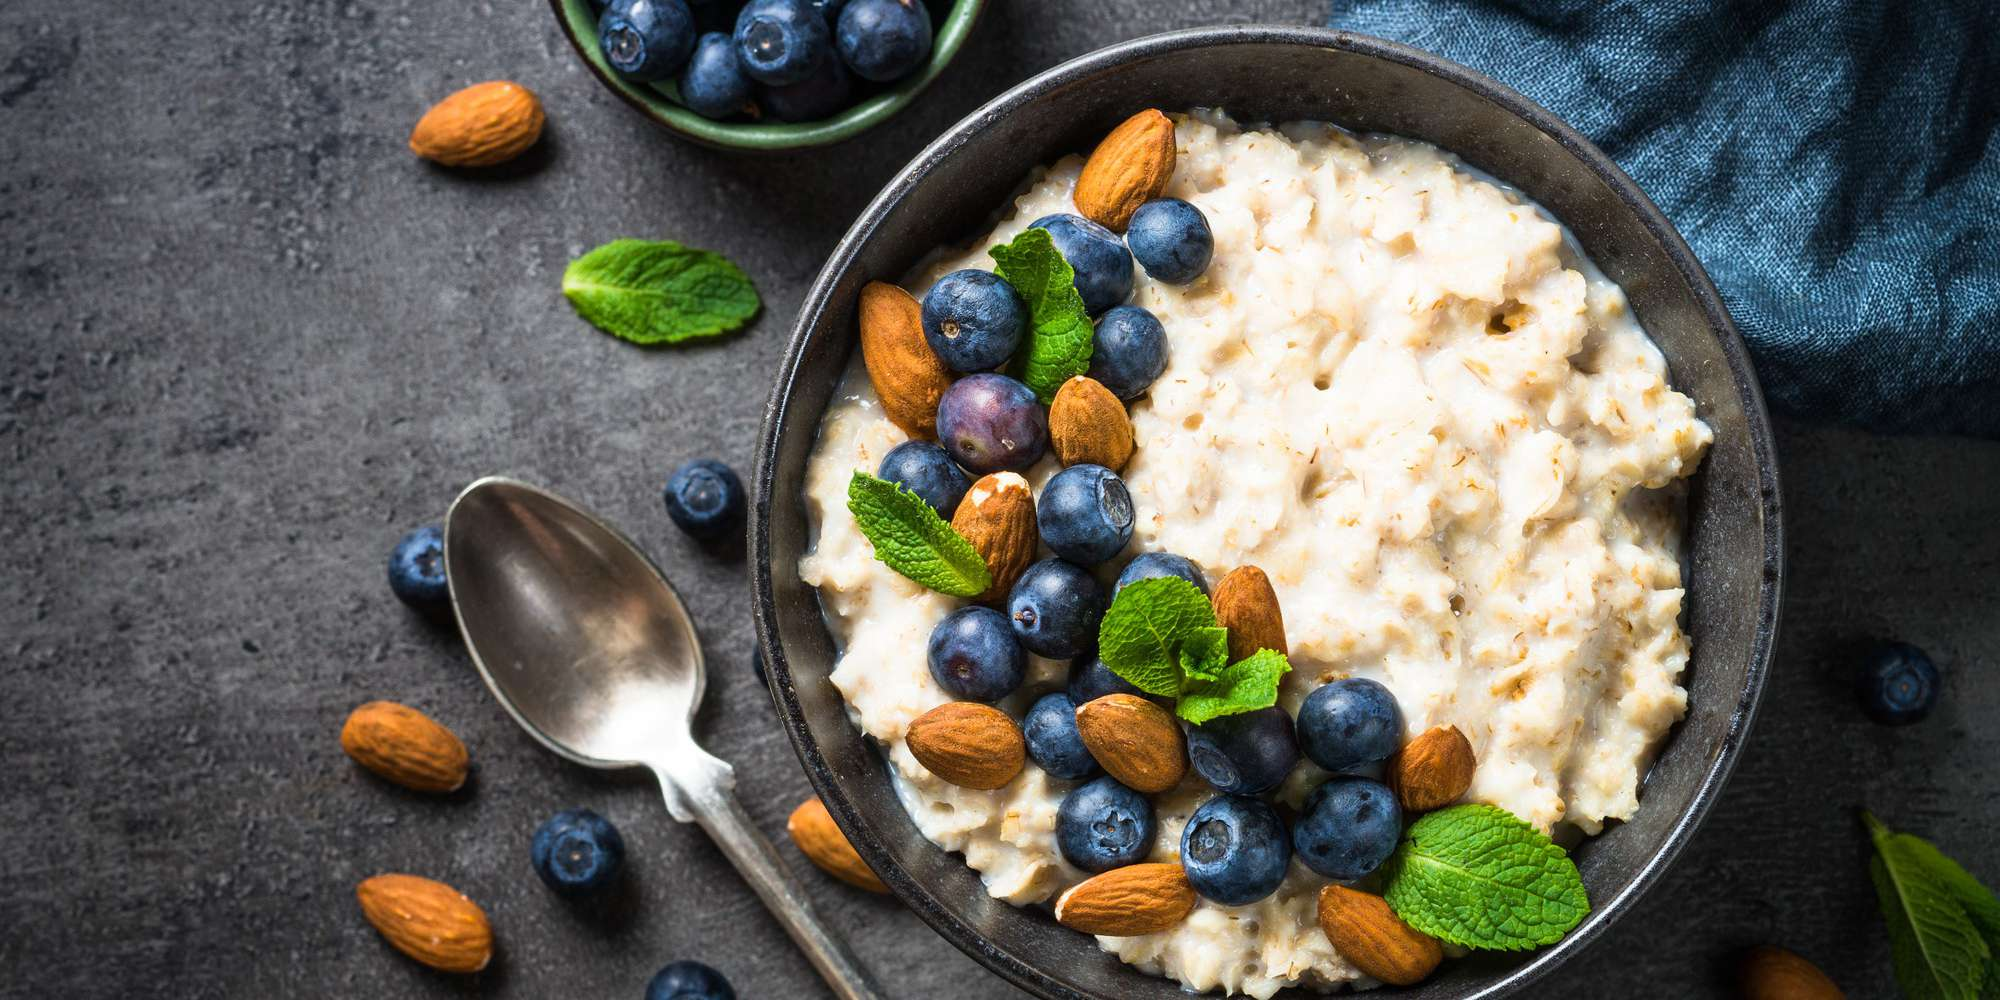 Simmered Blueberry Coconut Porridge